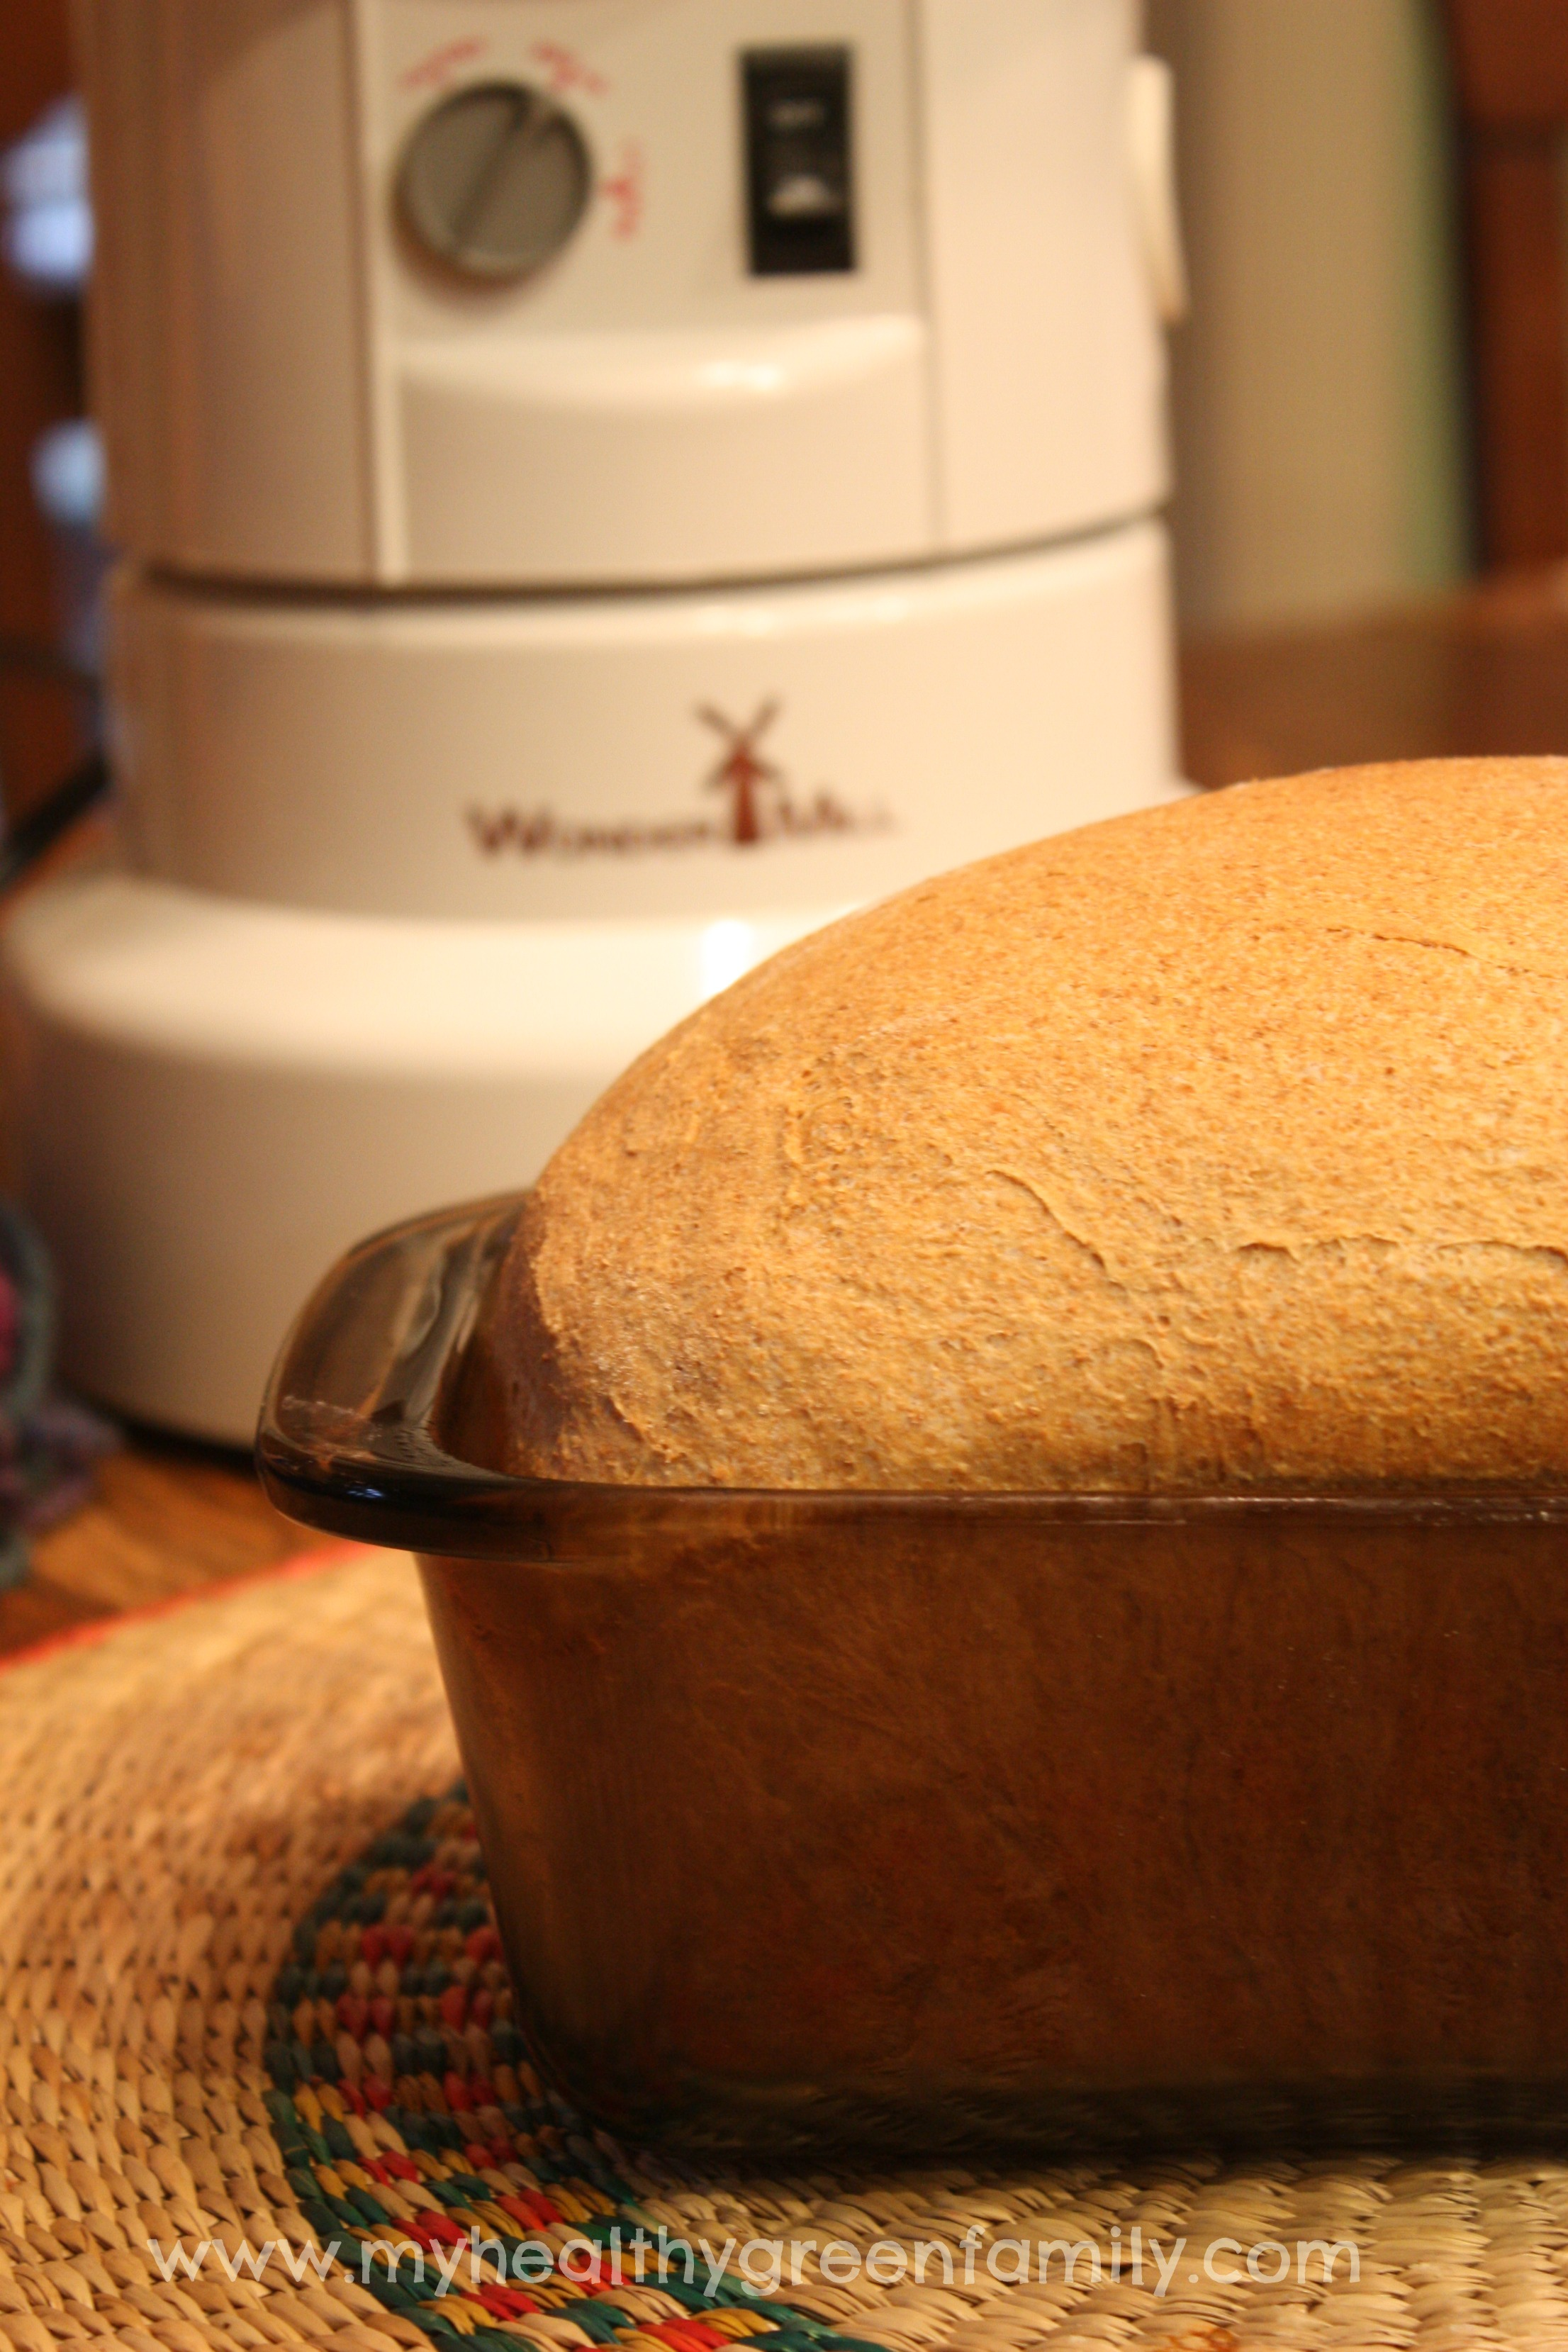 100% Whole Wheat Honey Bread. Simply, The Best! | Grain Mill Wagon